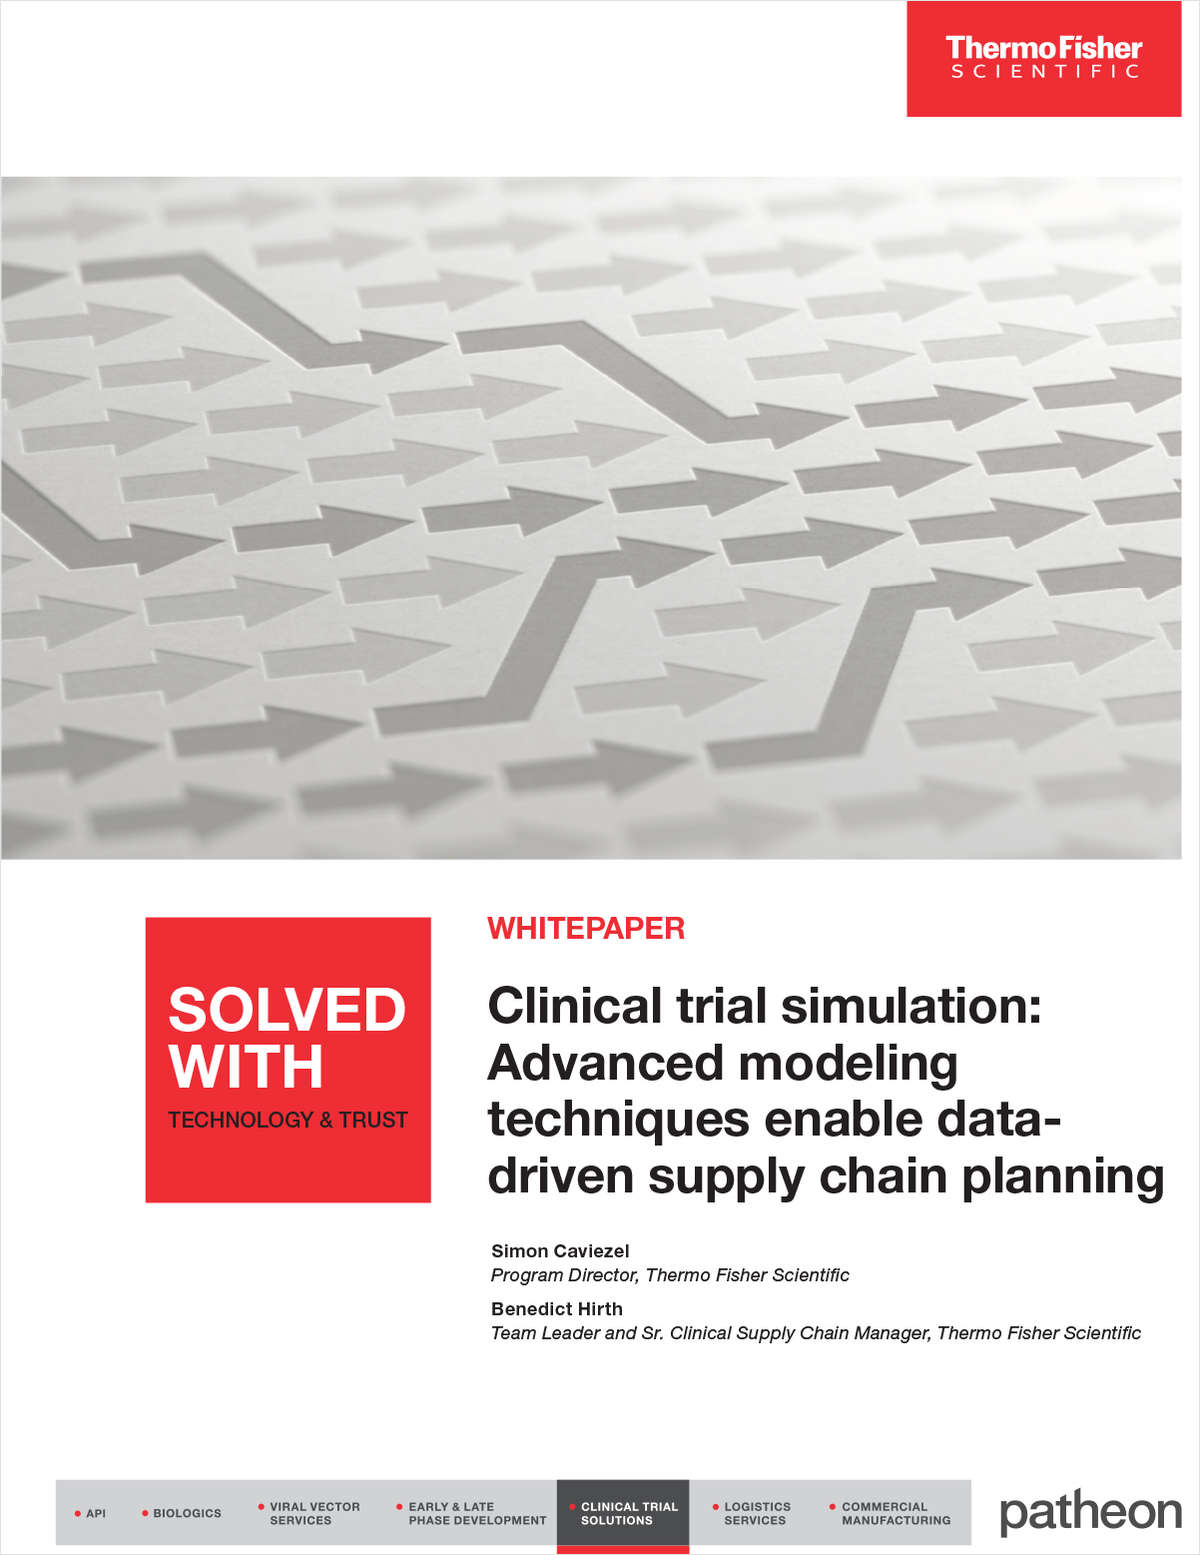 The roadmap for sophisticated clinical trial supply chain modeling